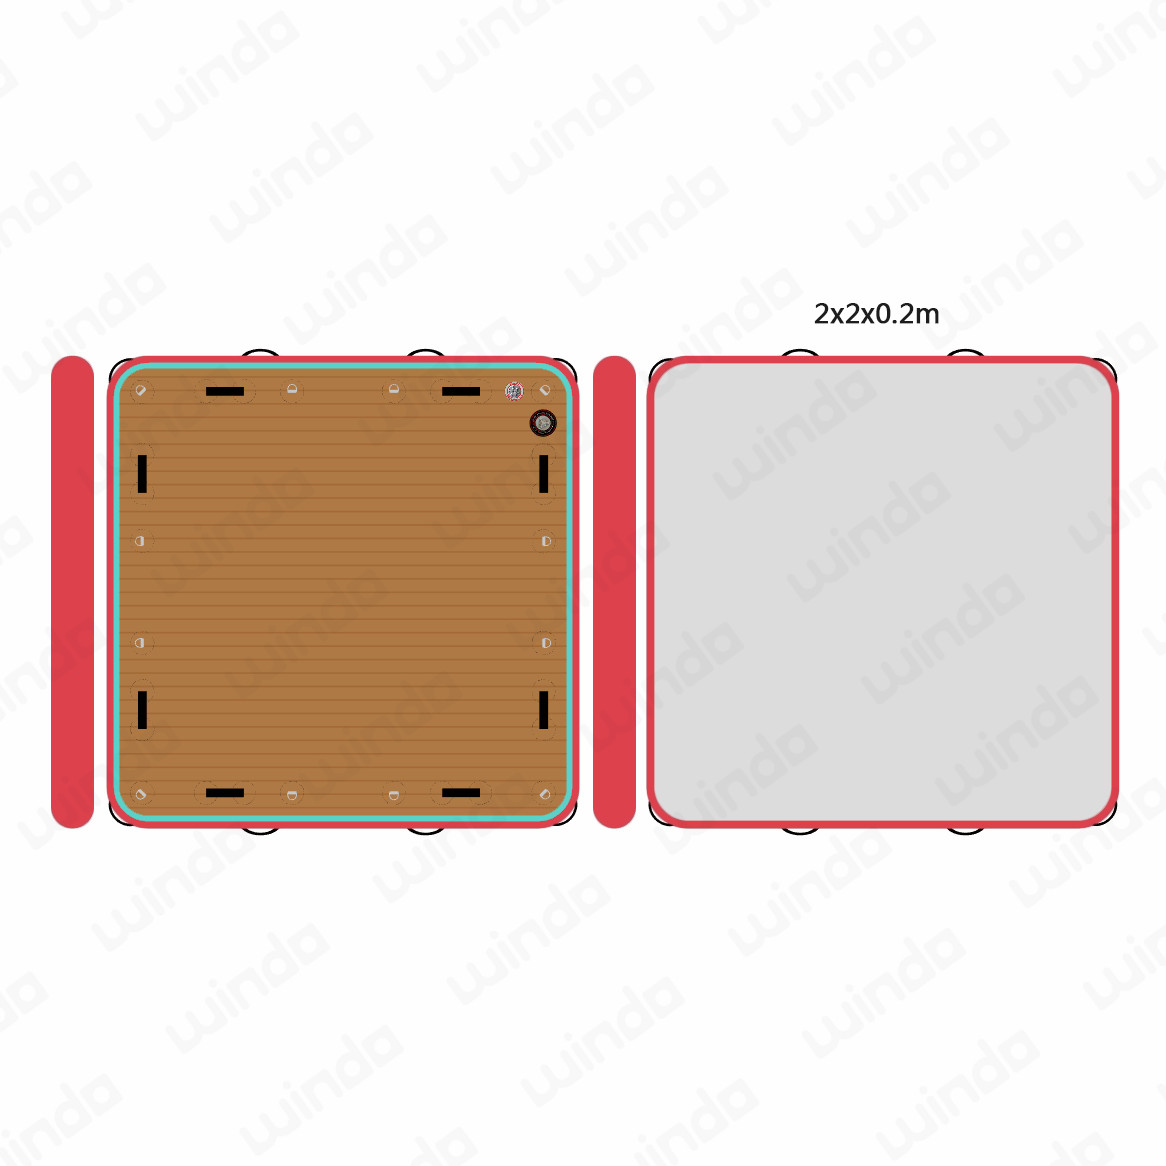 2x2x0.2m Drop stitch Teak red Inflatable <strong>water</strong> swim Jet-ski yacht fishing dock aqua sea floating pontoon platform